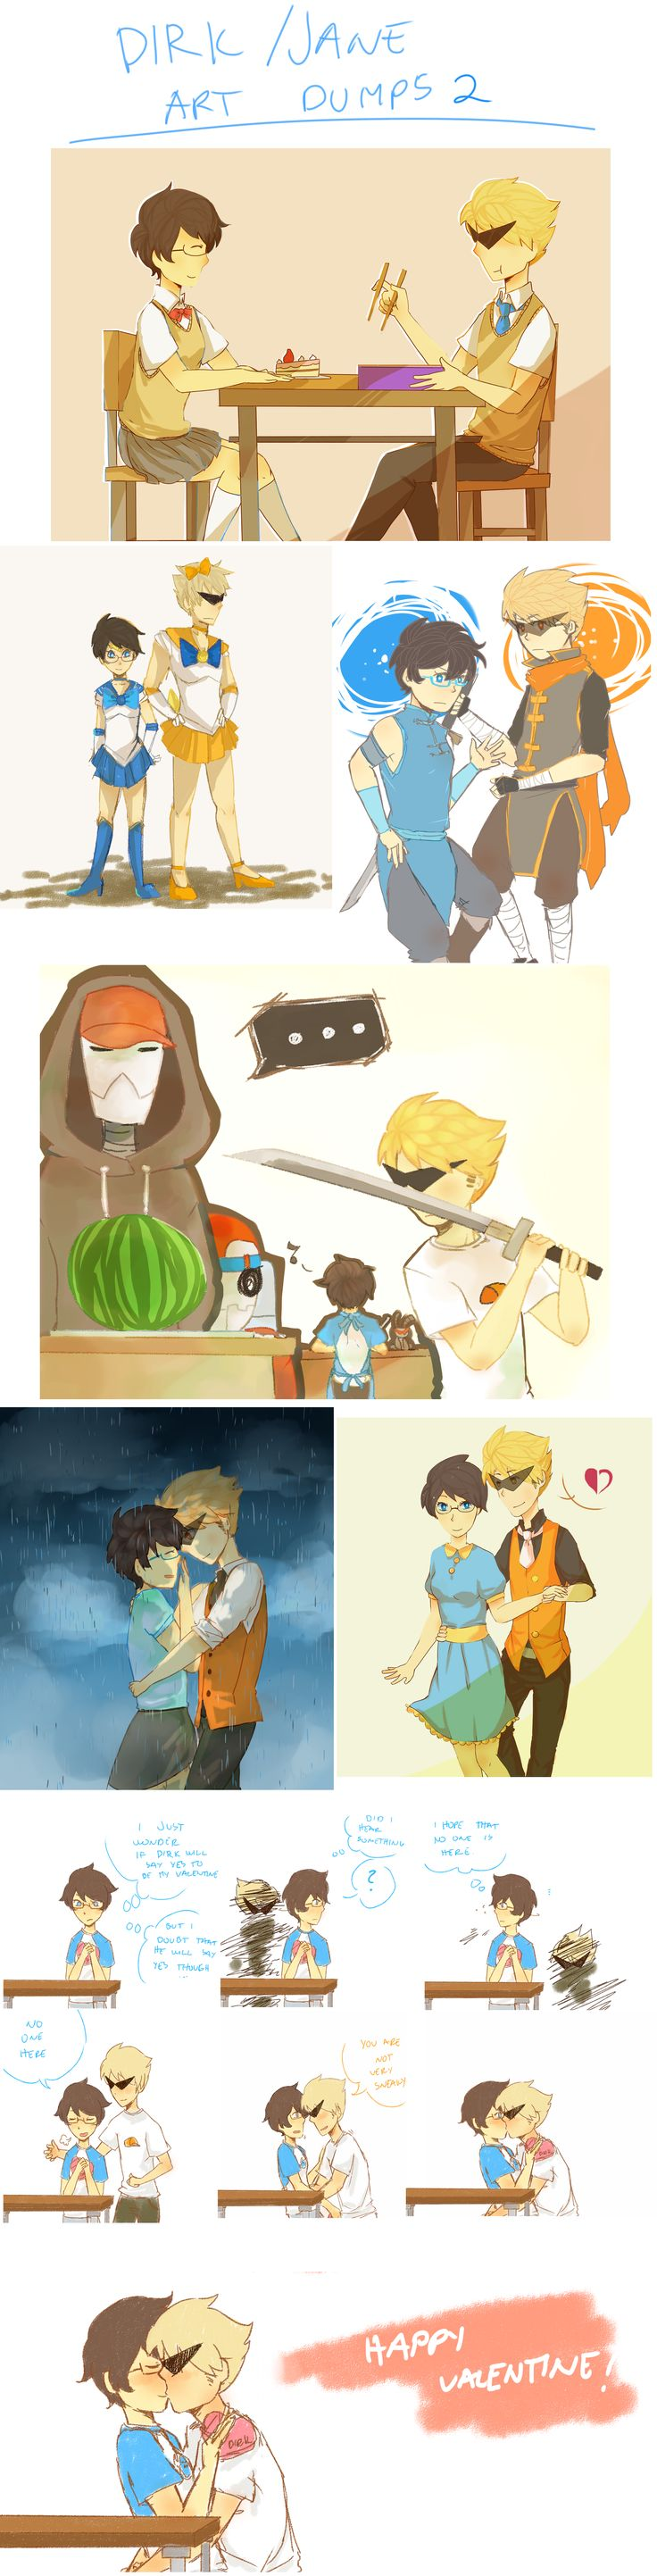 Homestuck Dirk And Jane